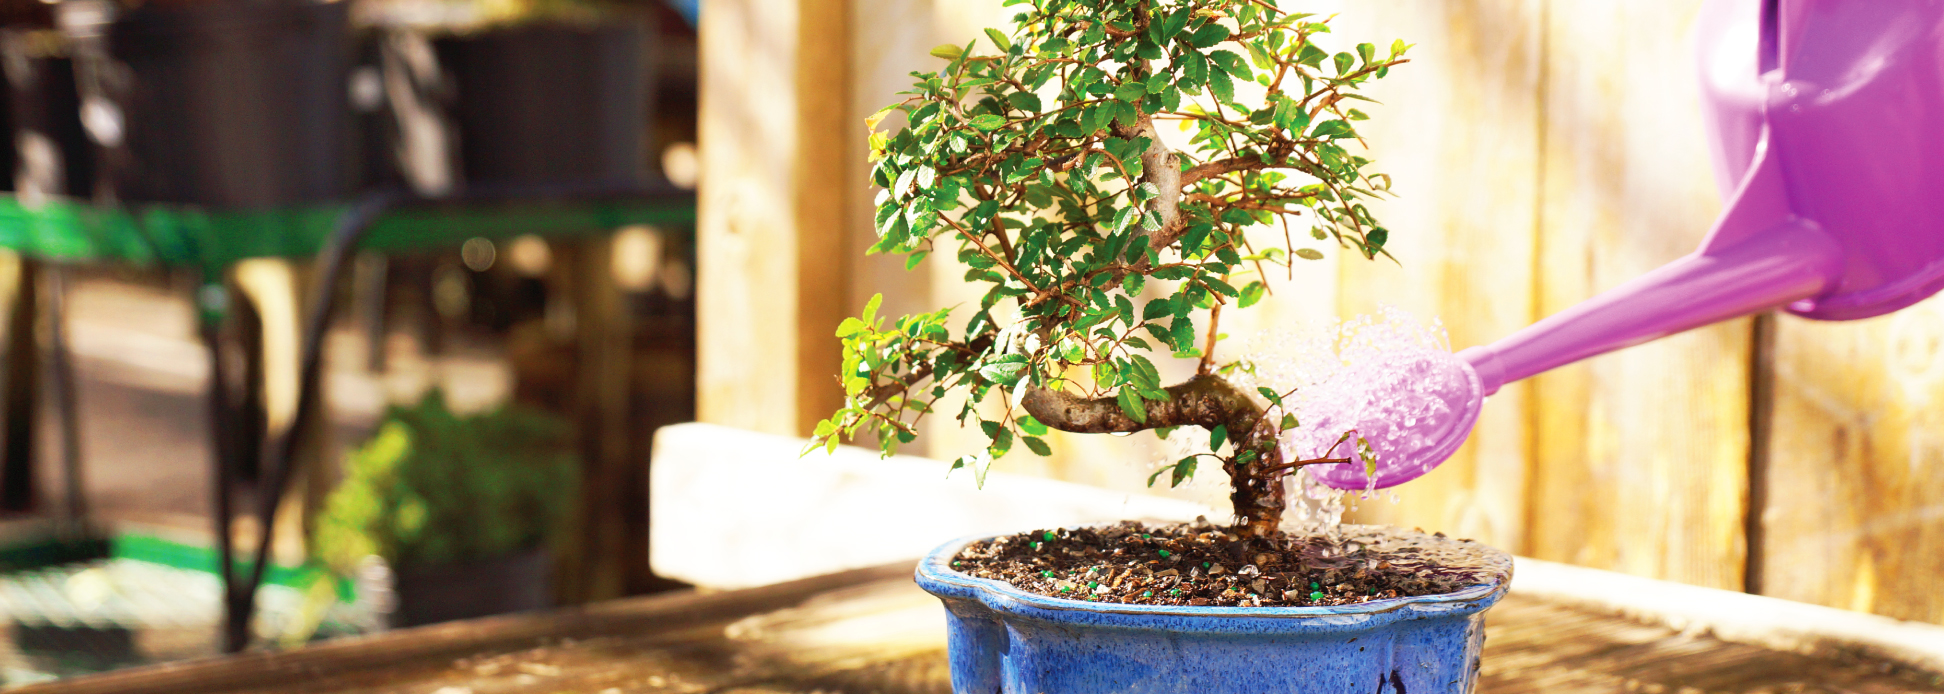 Chinese Elm Bonsai Being Watered